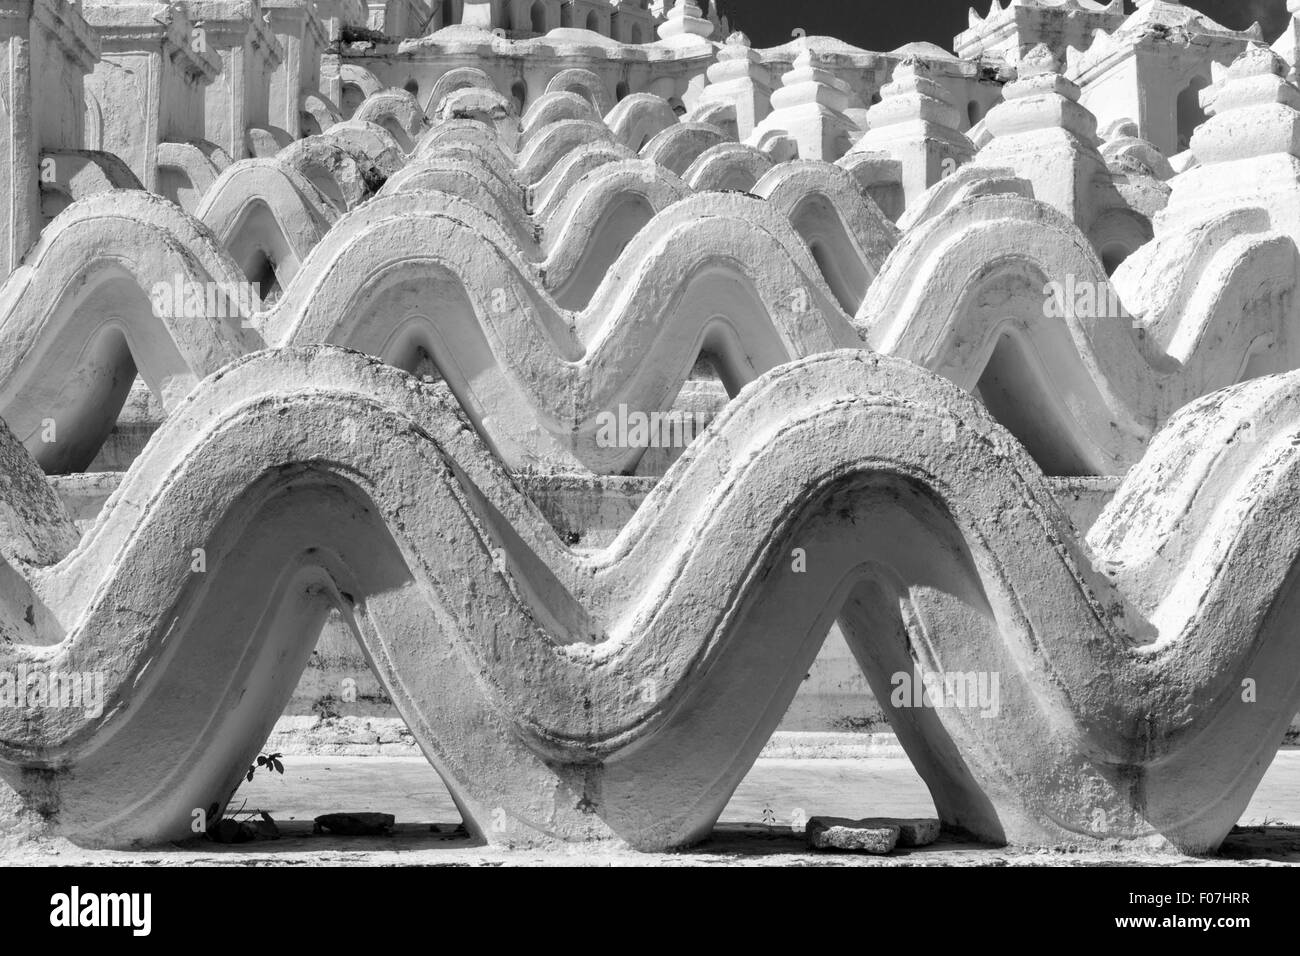 Hsinbyume or Mya Thein Dan temple in Mingun Myanmar. The 7 wavy terraces are said to represent the 7 ranges of Mt.Meru. - Stock Image